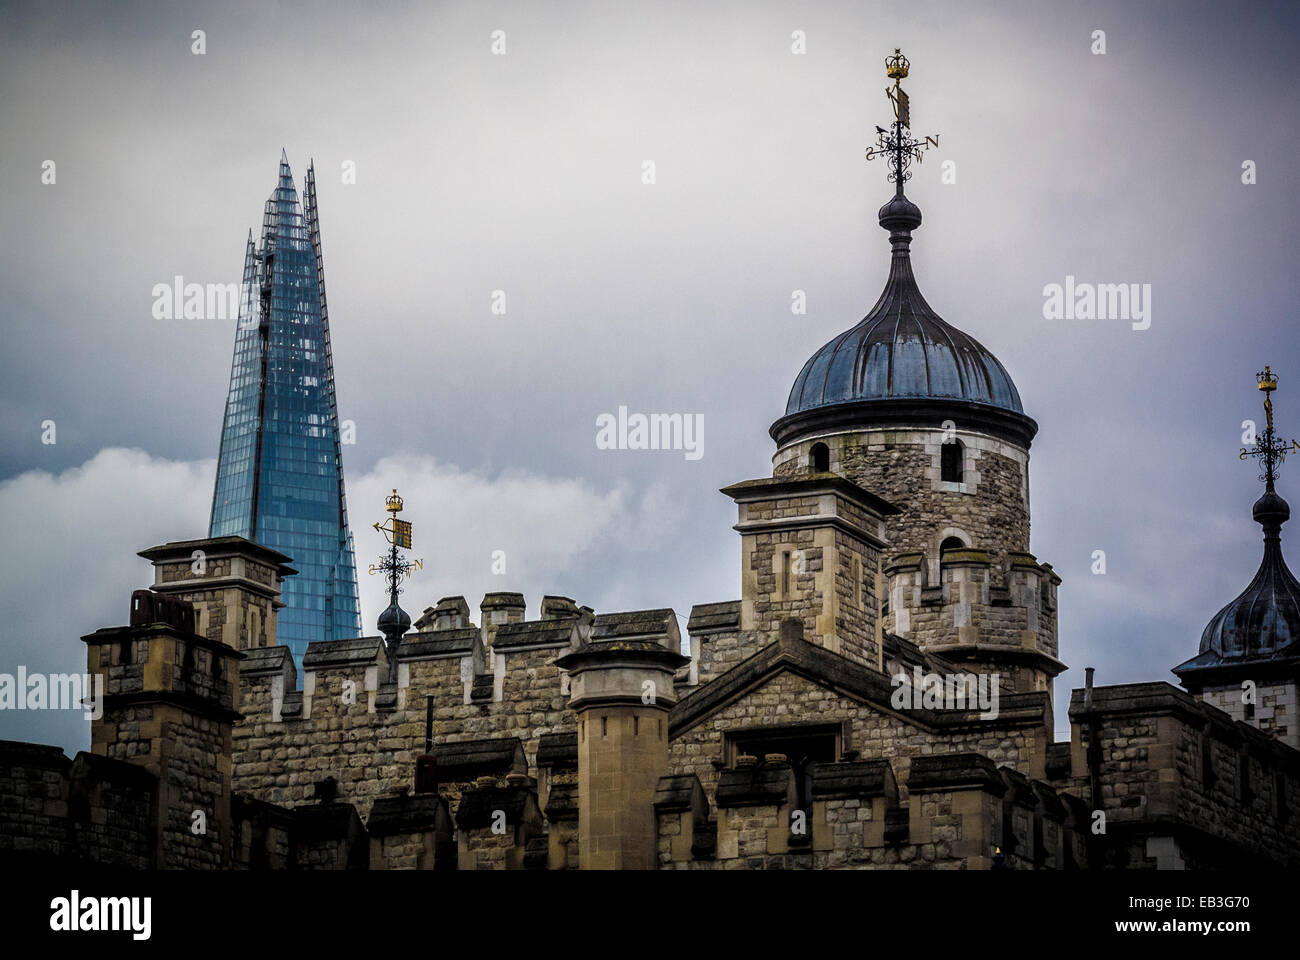 The Tower of London with The Shard building in the background. - Stock Image